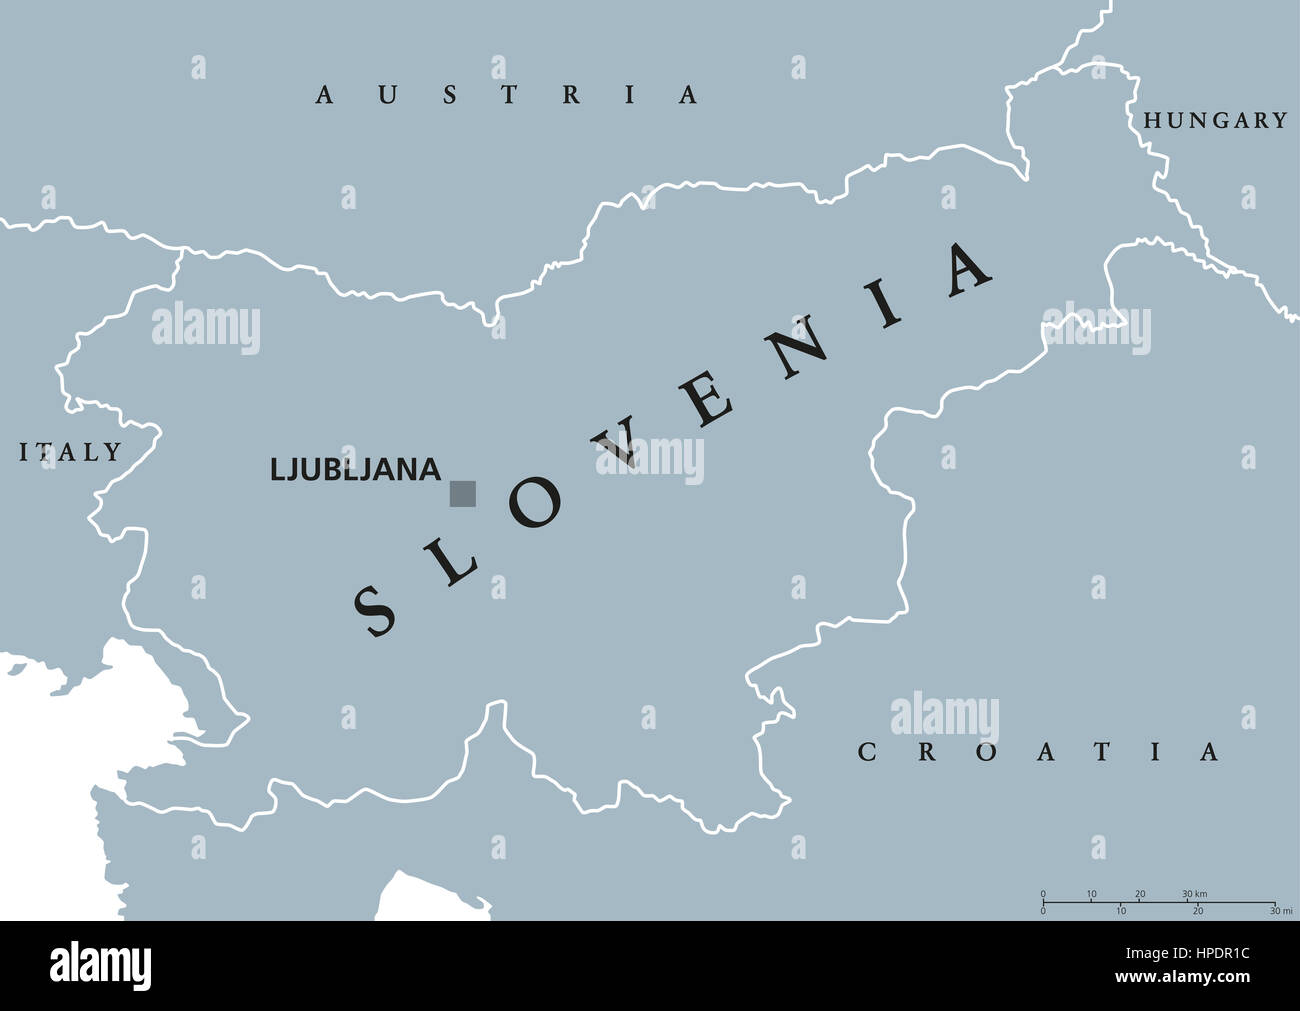 Slovenia political map with capital Ljubljana and neighbor countries